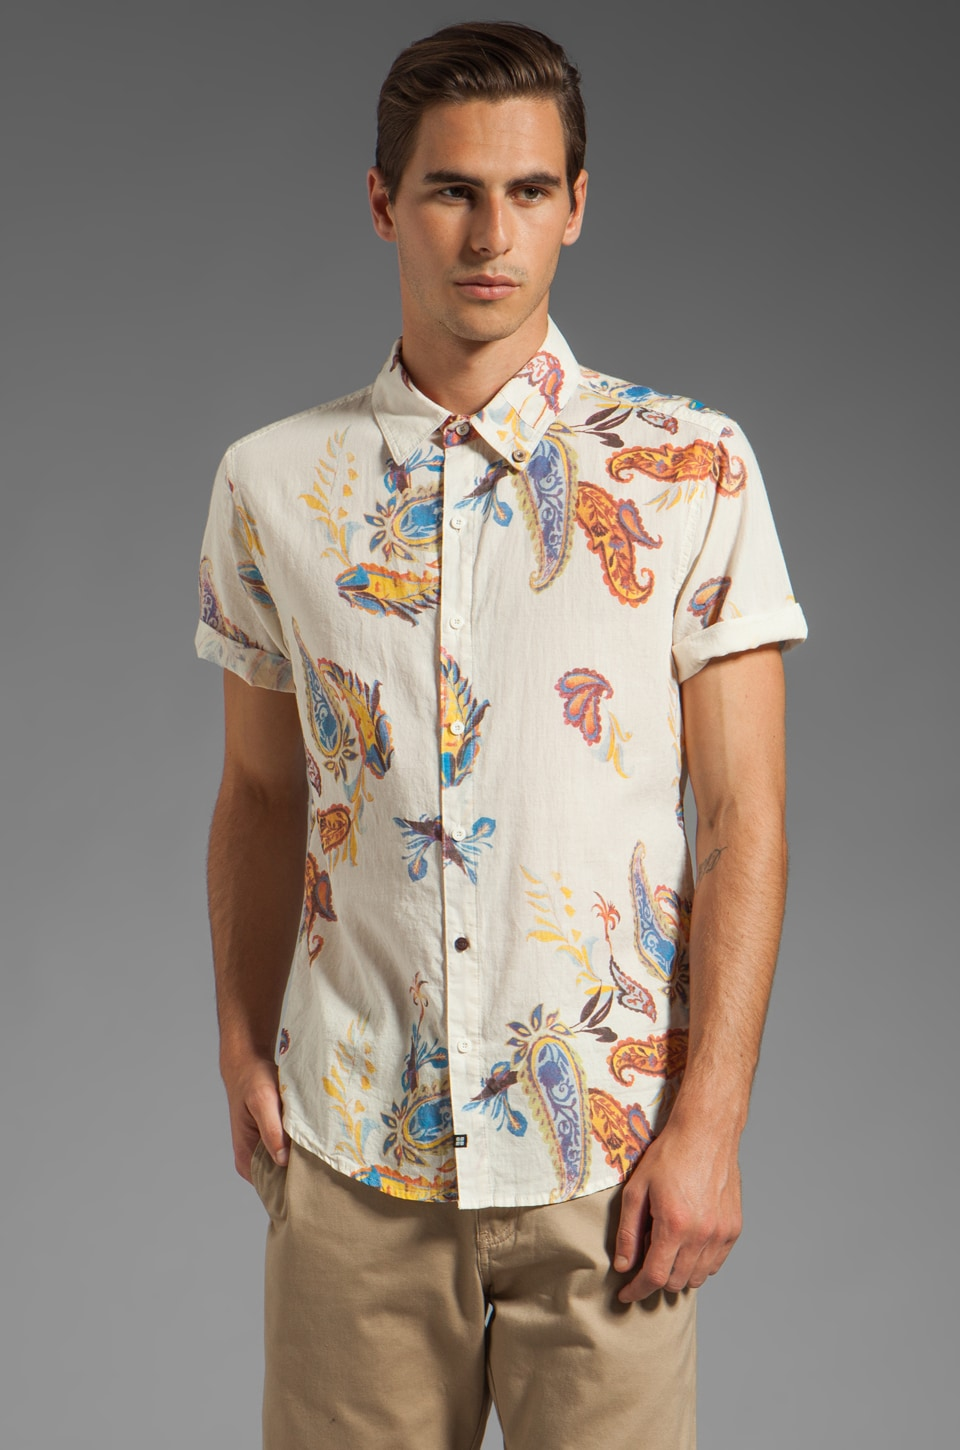 Insight Island Hop Short Sleeve Shirt in Dusted